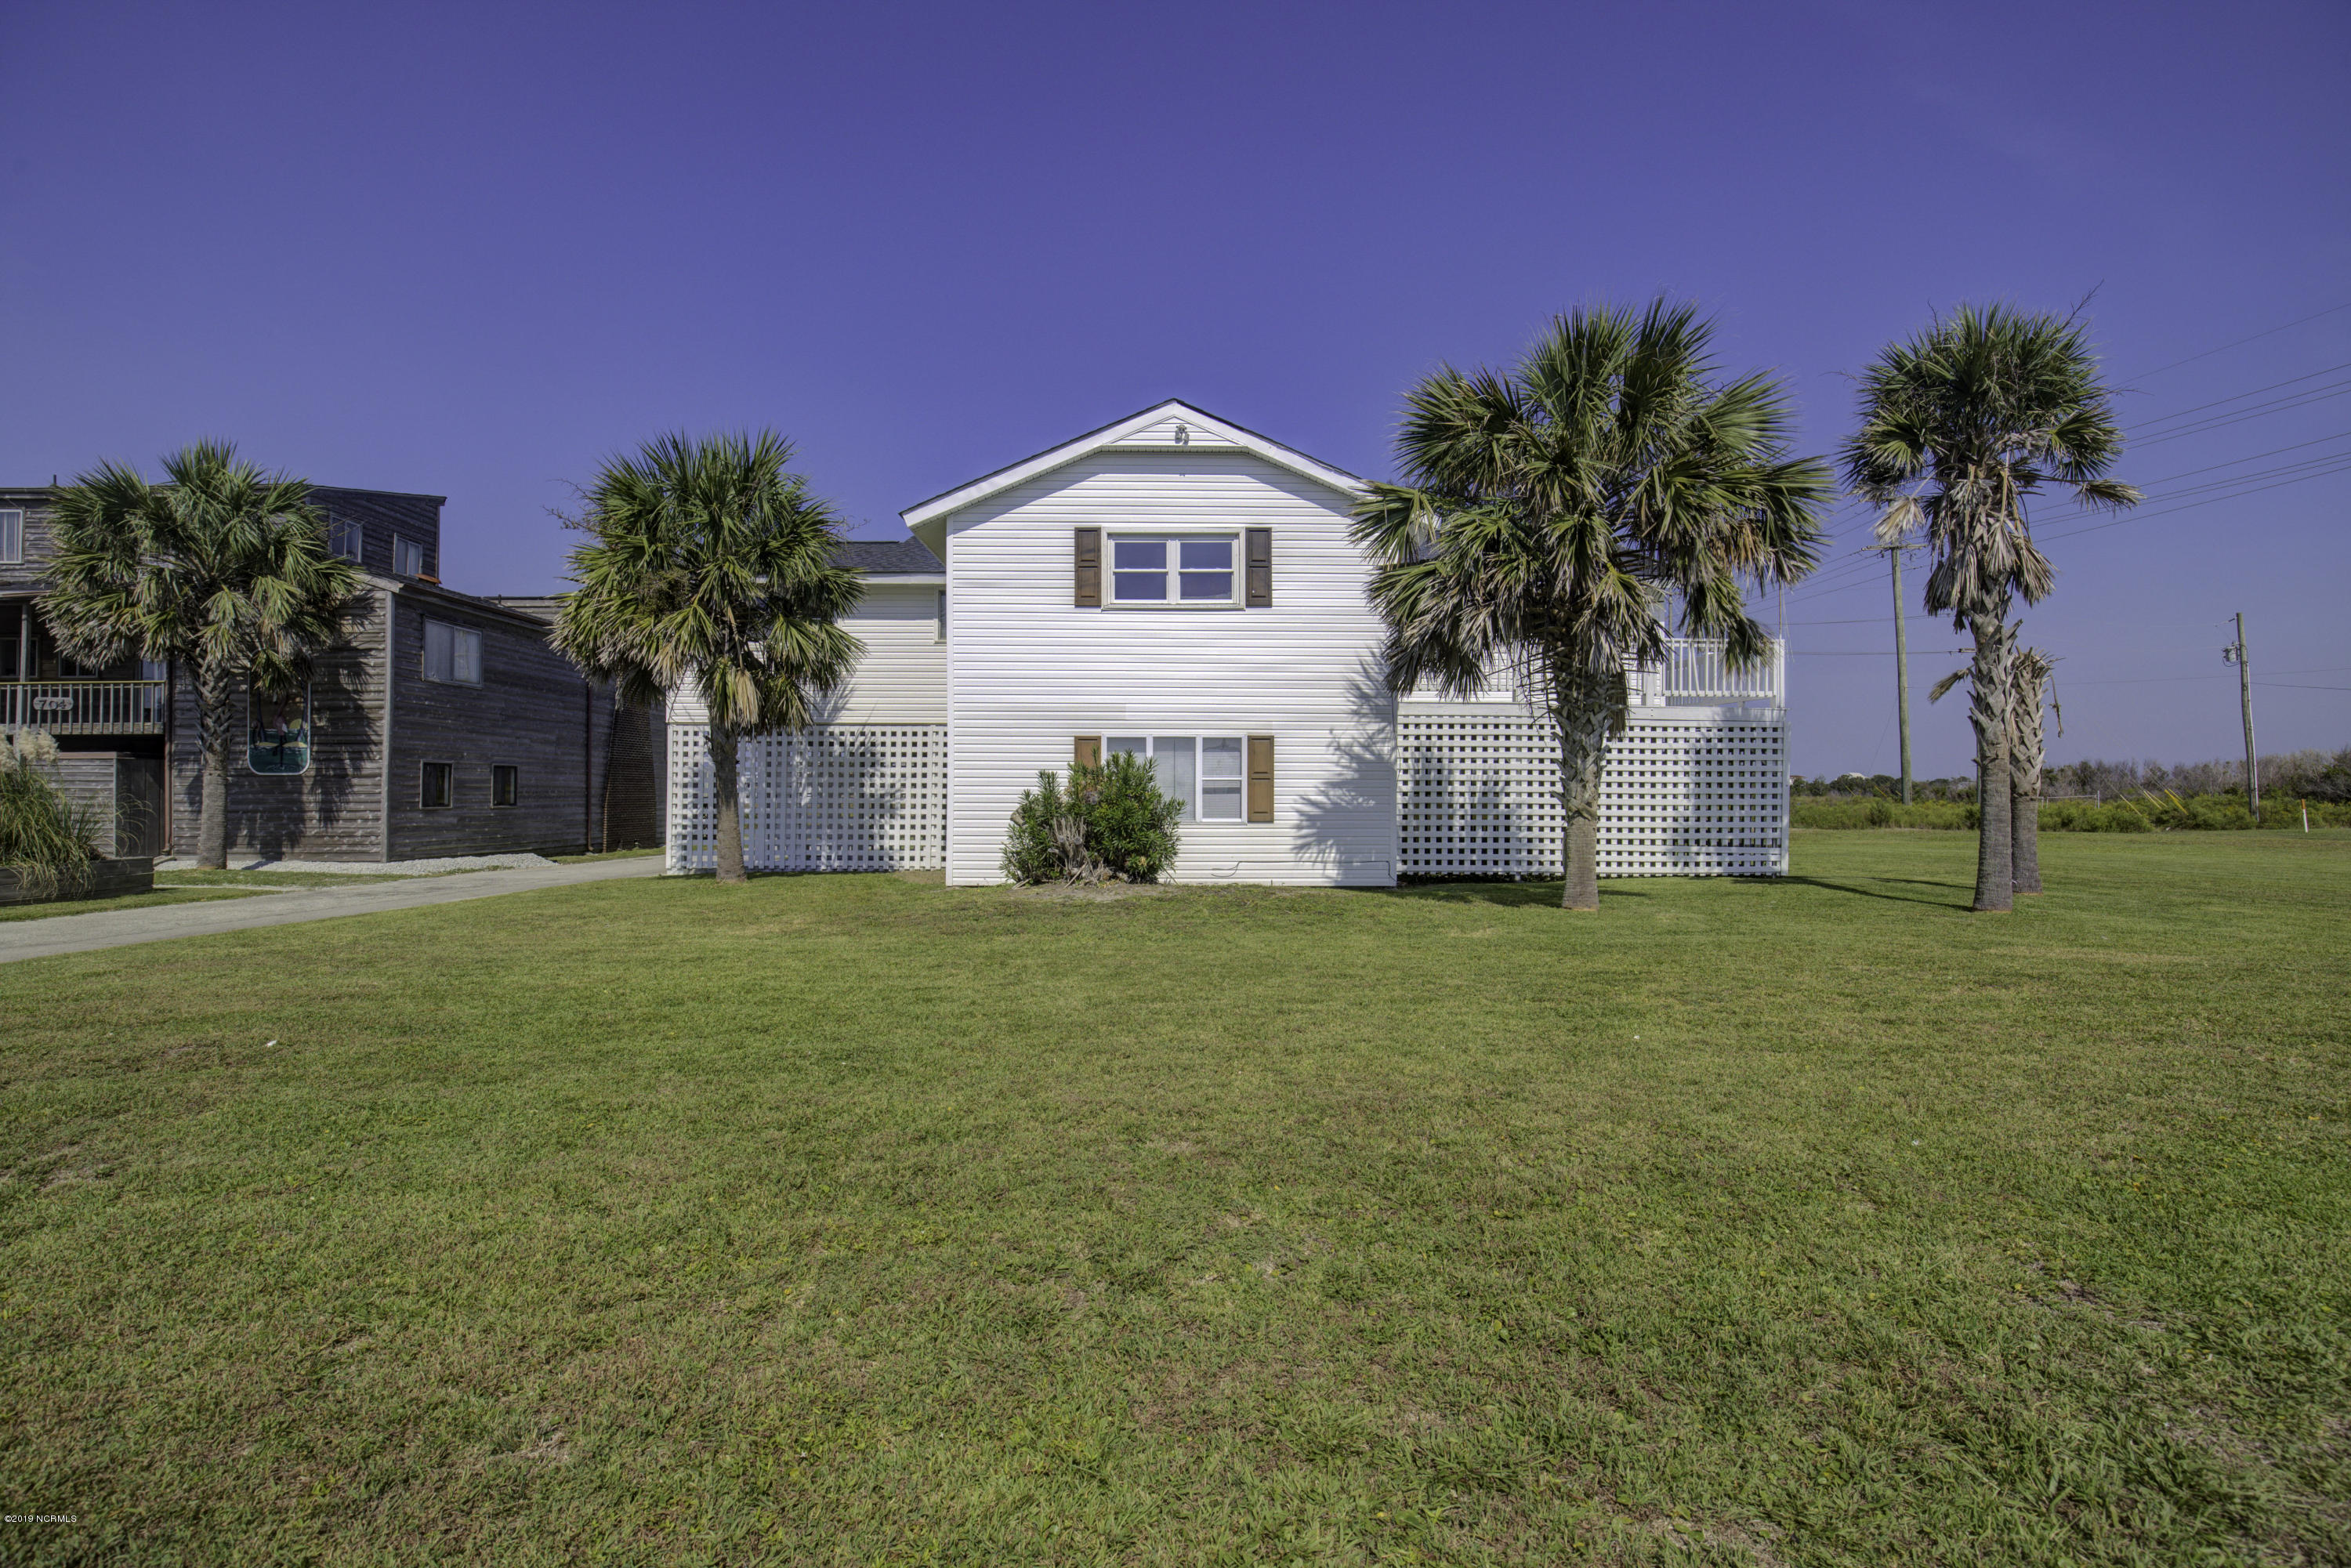 702 Trade Winds Drive, North Topsail Beach, North Carolina 28460, 3 Bedrooms Bedrooms, ,3 BathroomsBathrooms,Residential,For Sale,Trade Winds,100125819